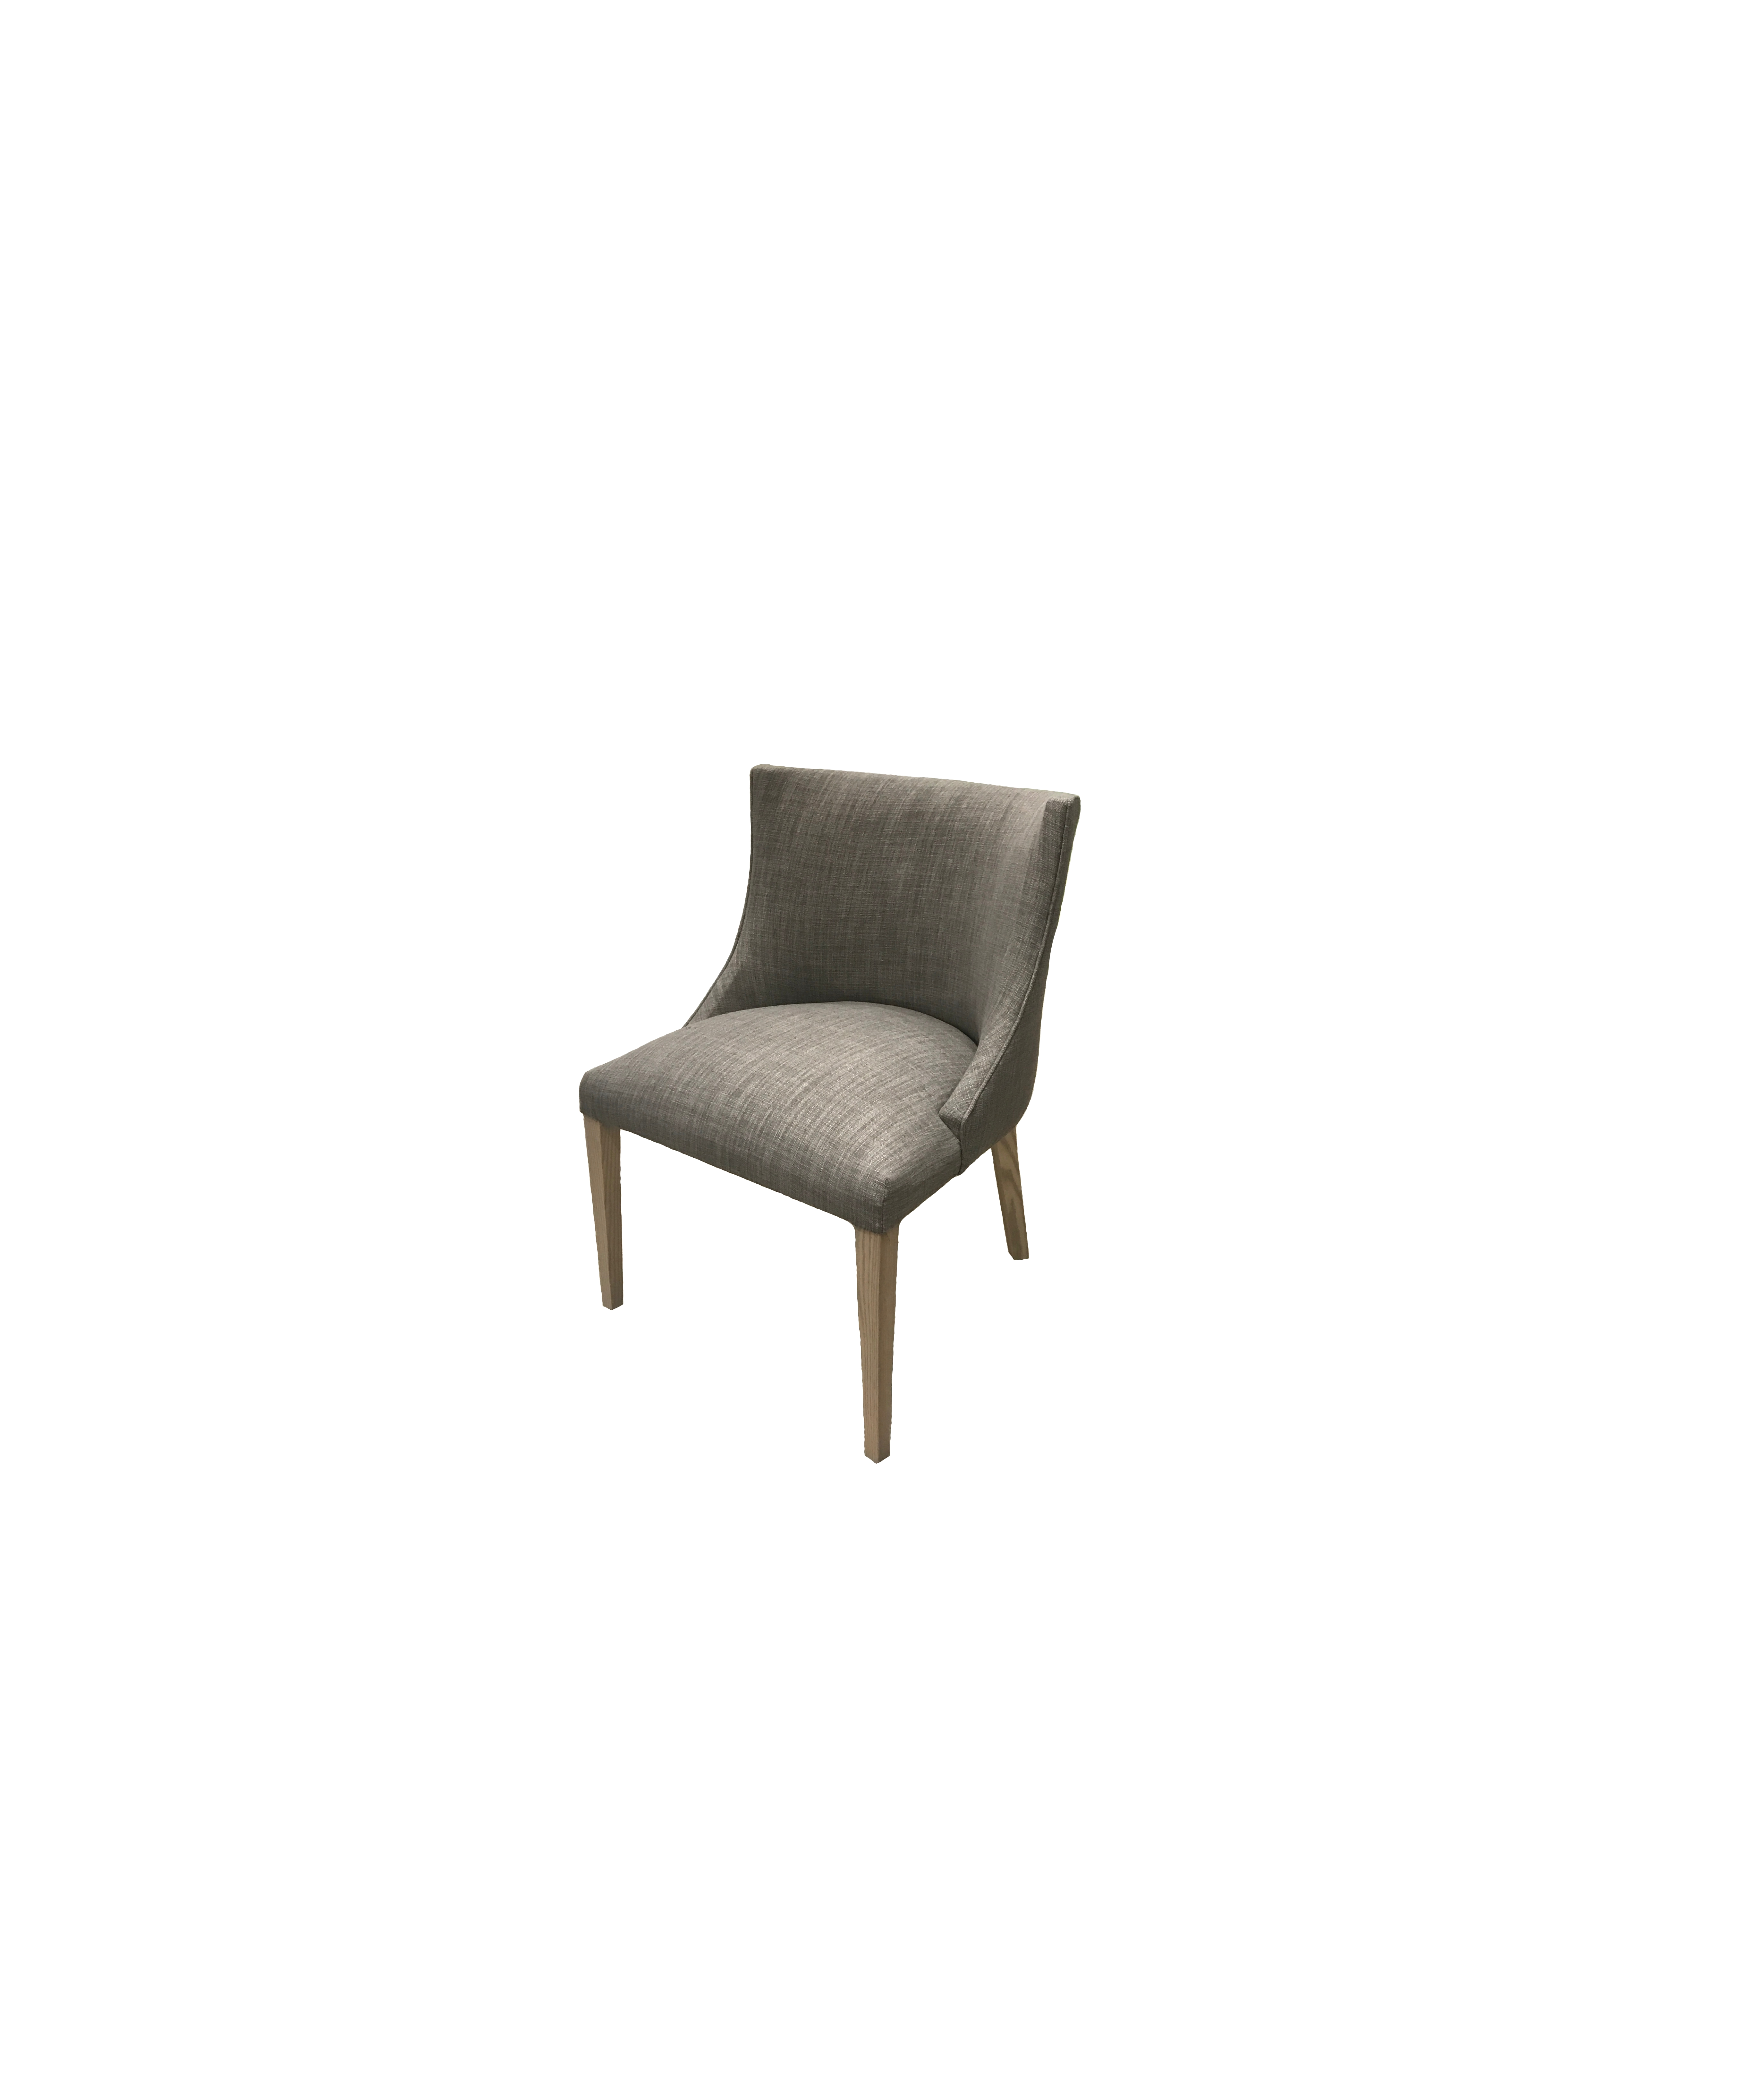 Coco type 2 dining chair